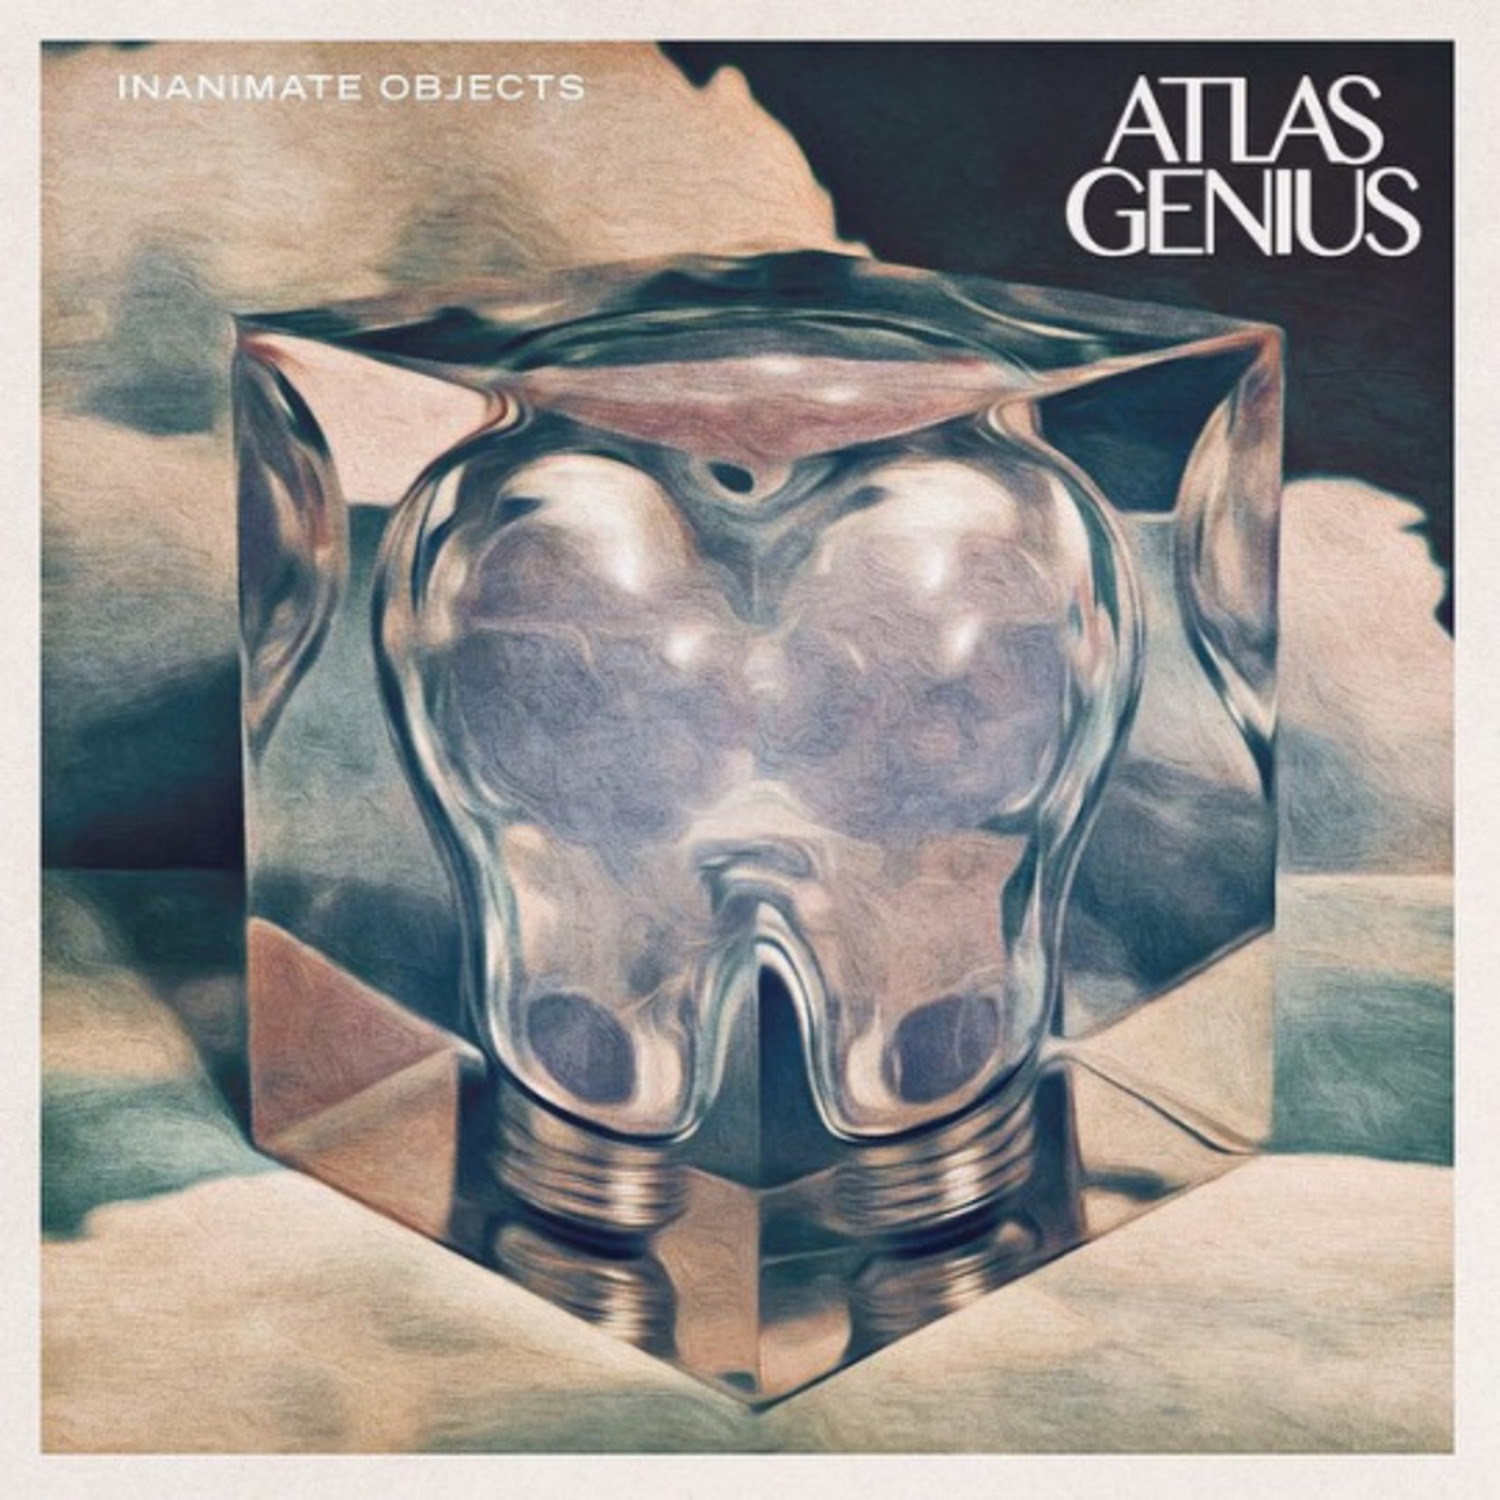 Atlas Genius - Inanimate Objects will be released on August 28th!